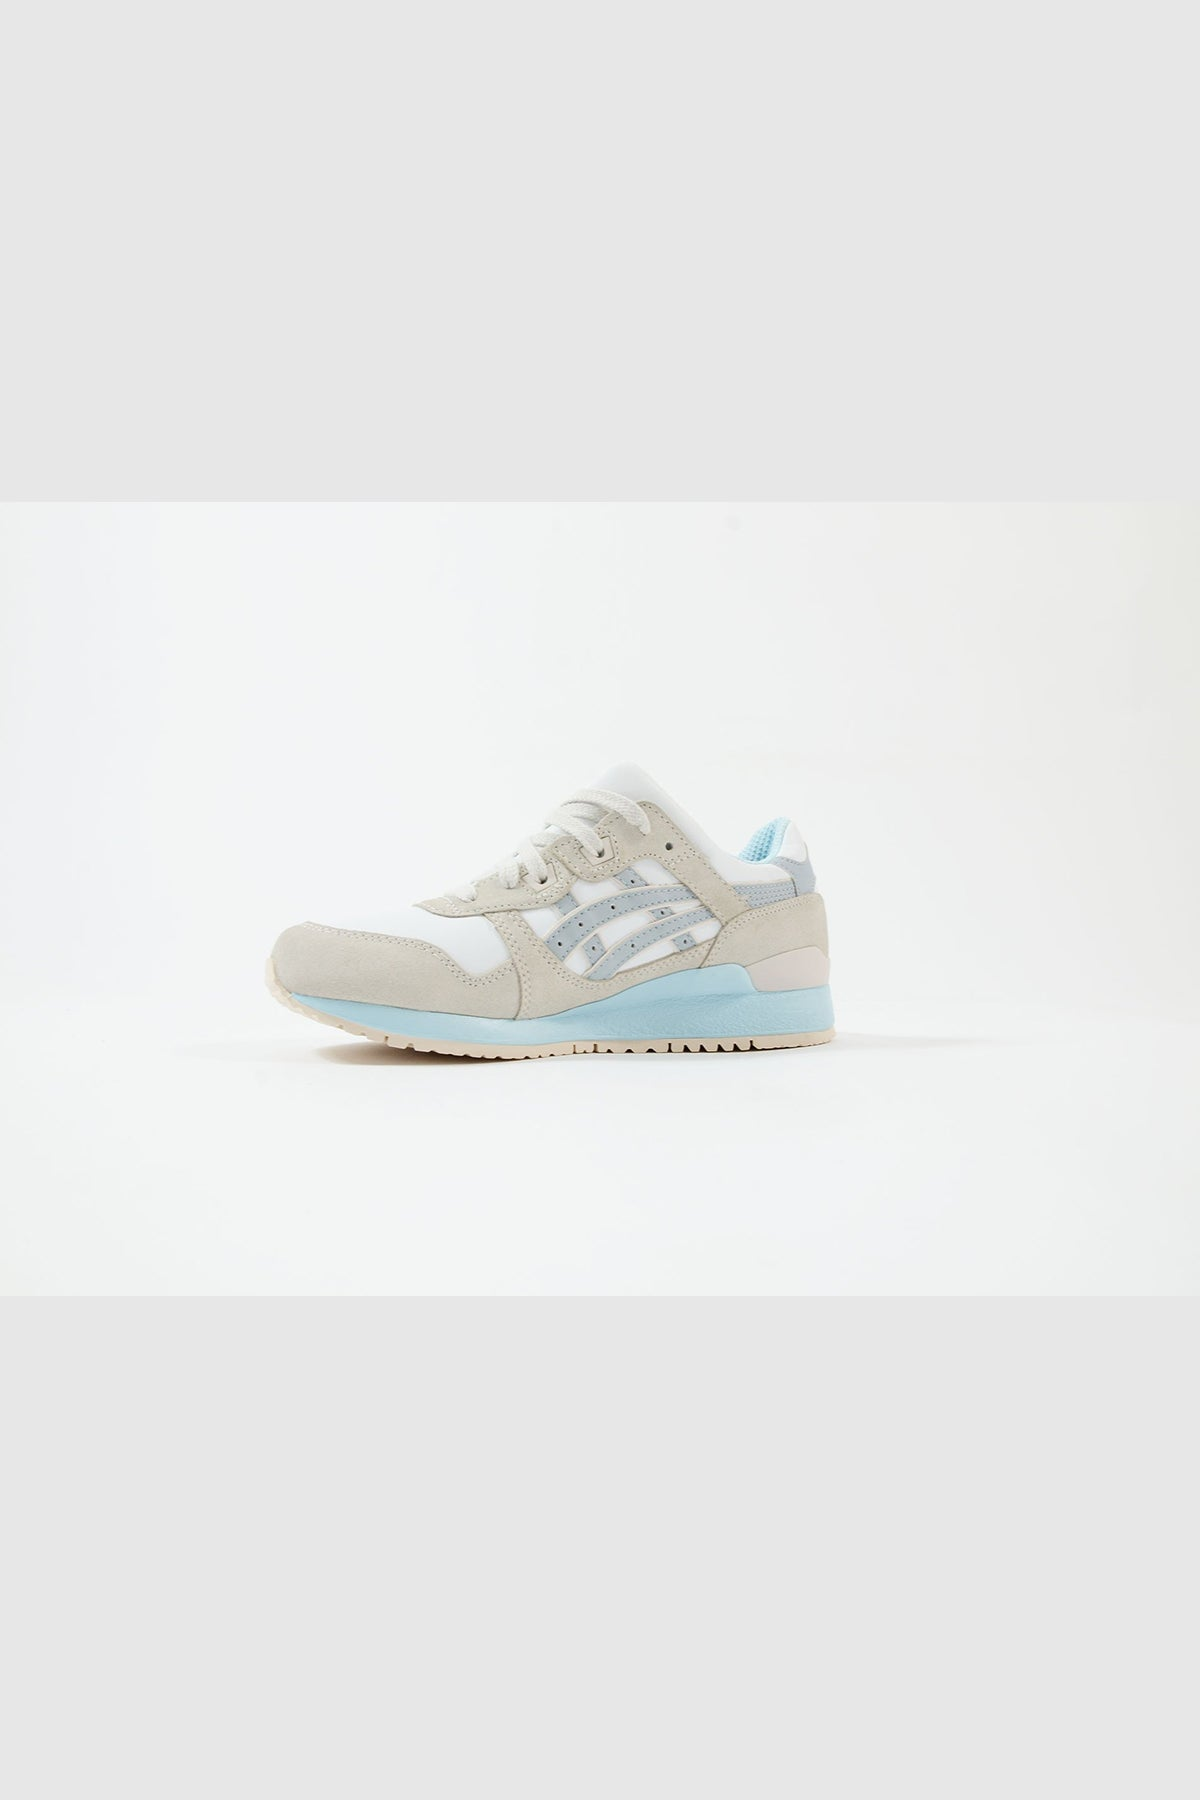 Asics - Gel lyte III Women (White/ Light - Grey)